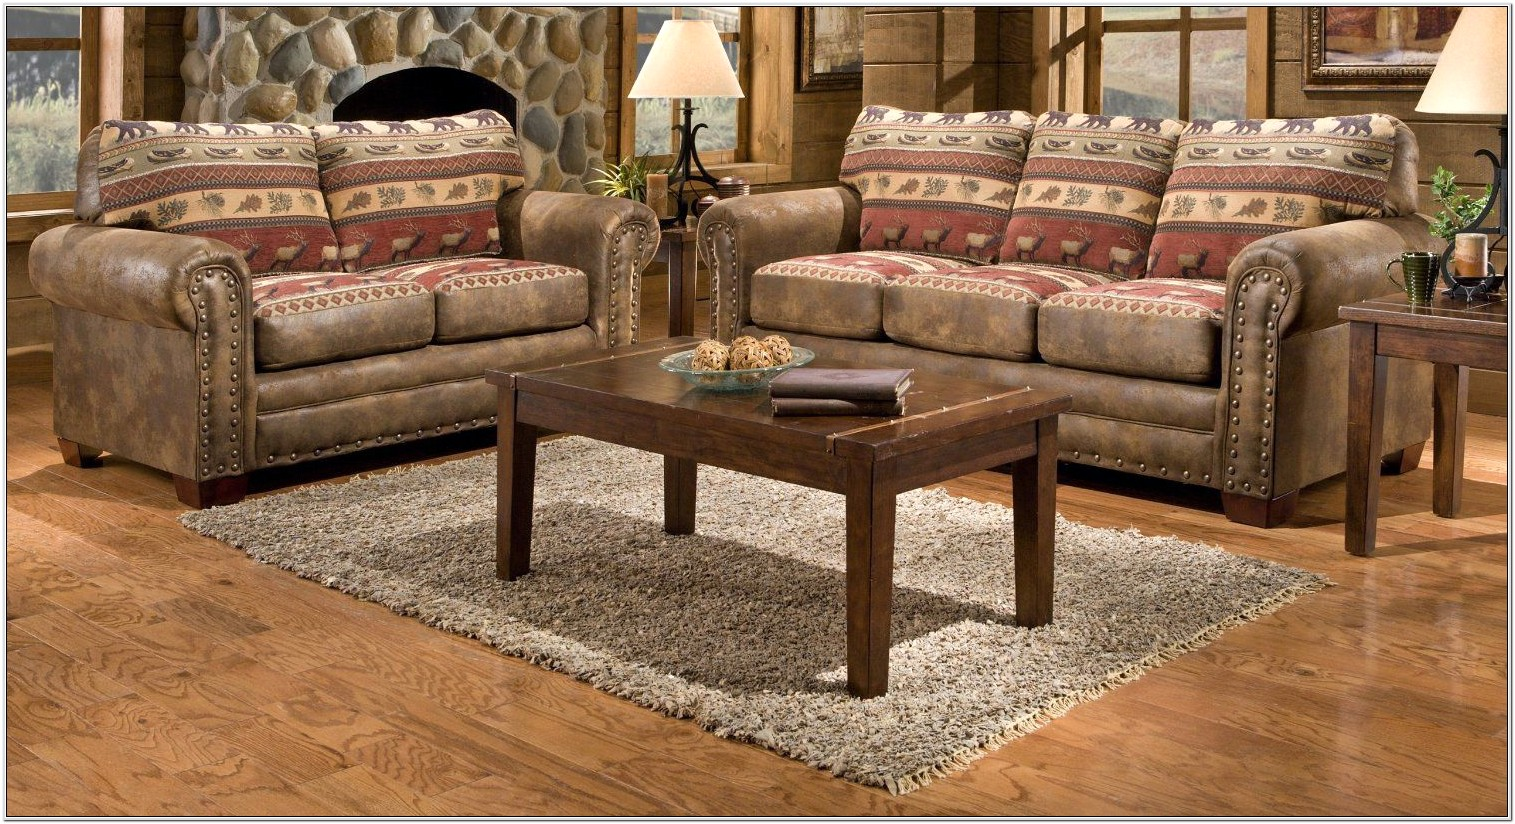 Cabin Living Room Couches Ideas